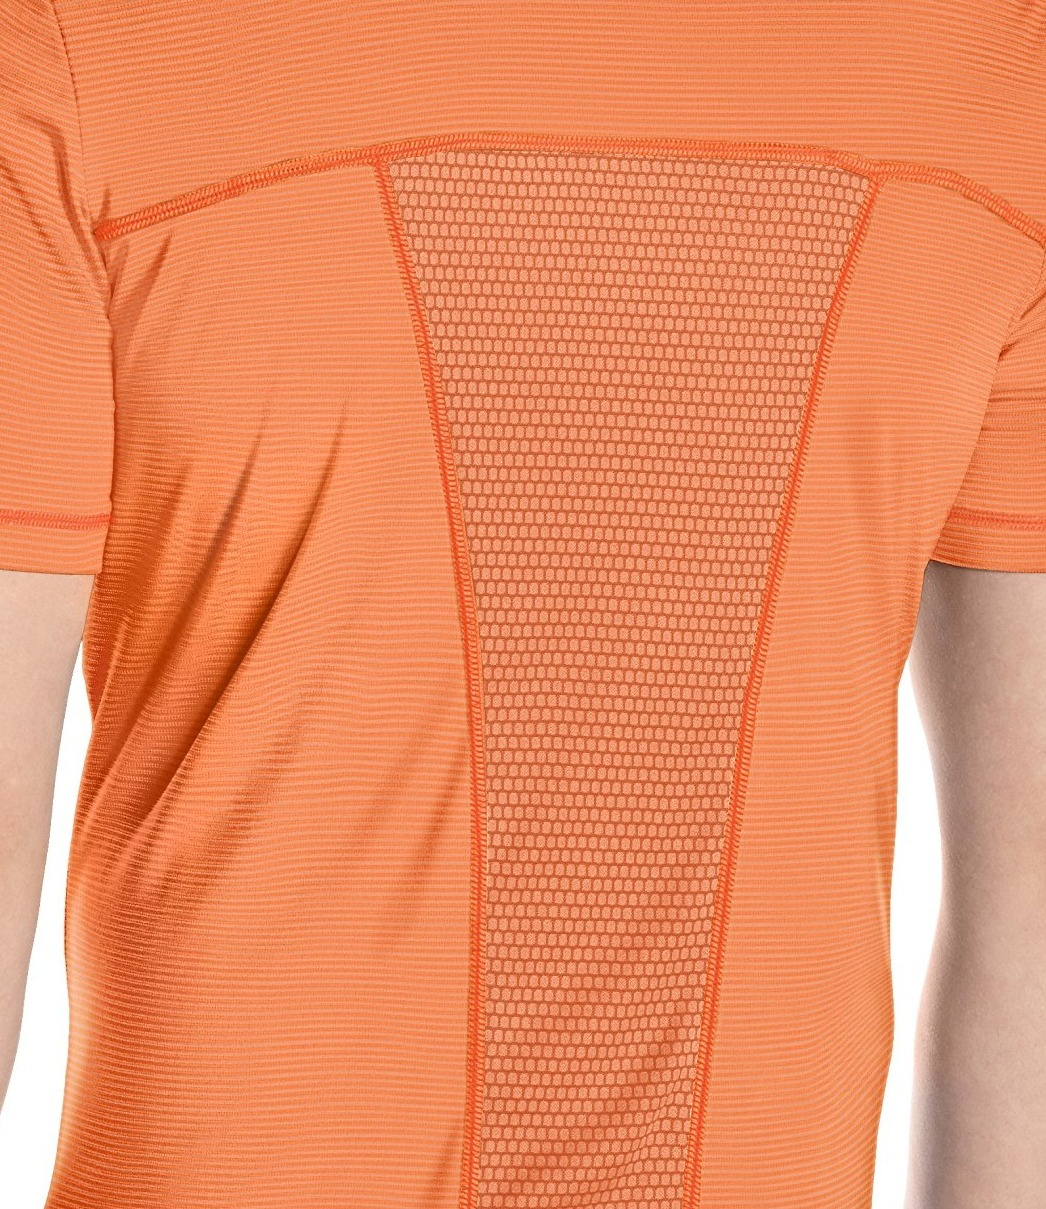 Asics-NEW-Striped-Mens-Shosha-Performance-Short-Sleeve-Tee-T-Shirt-40 thumbnail 14